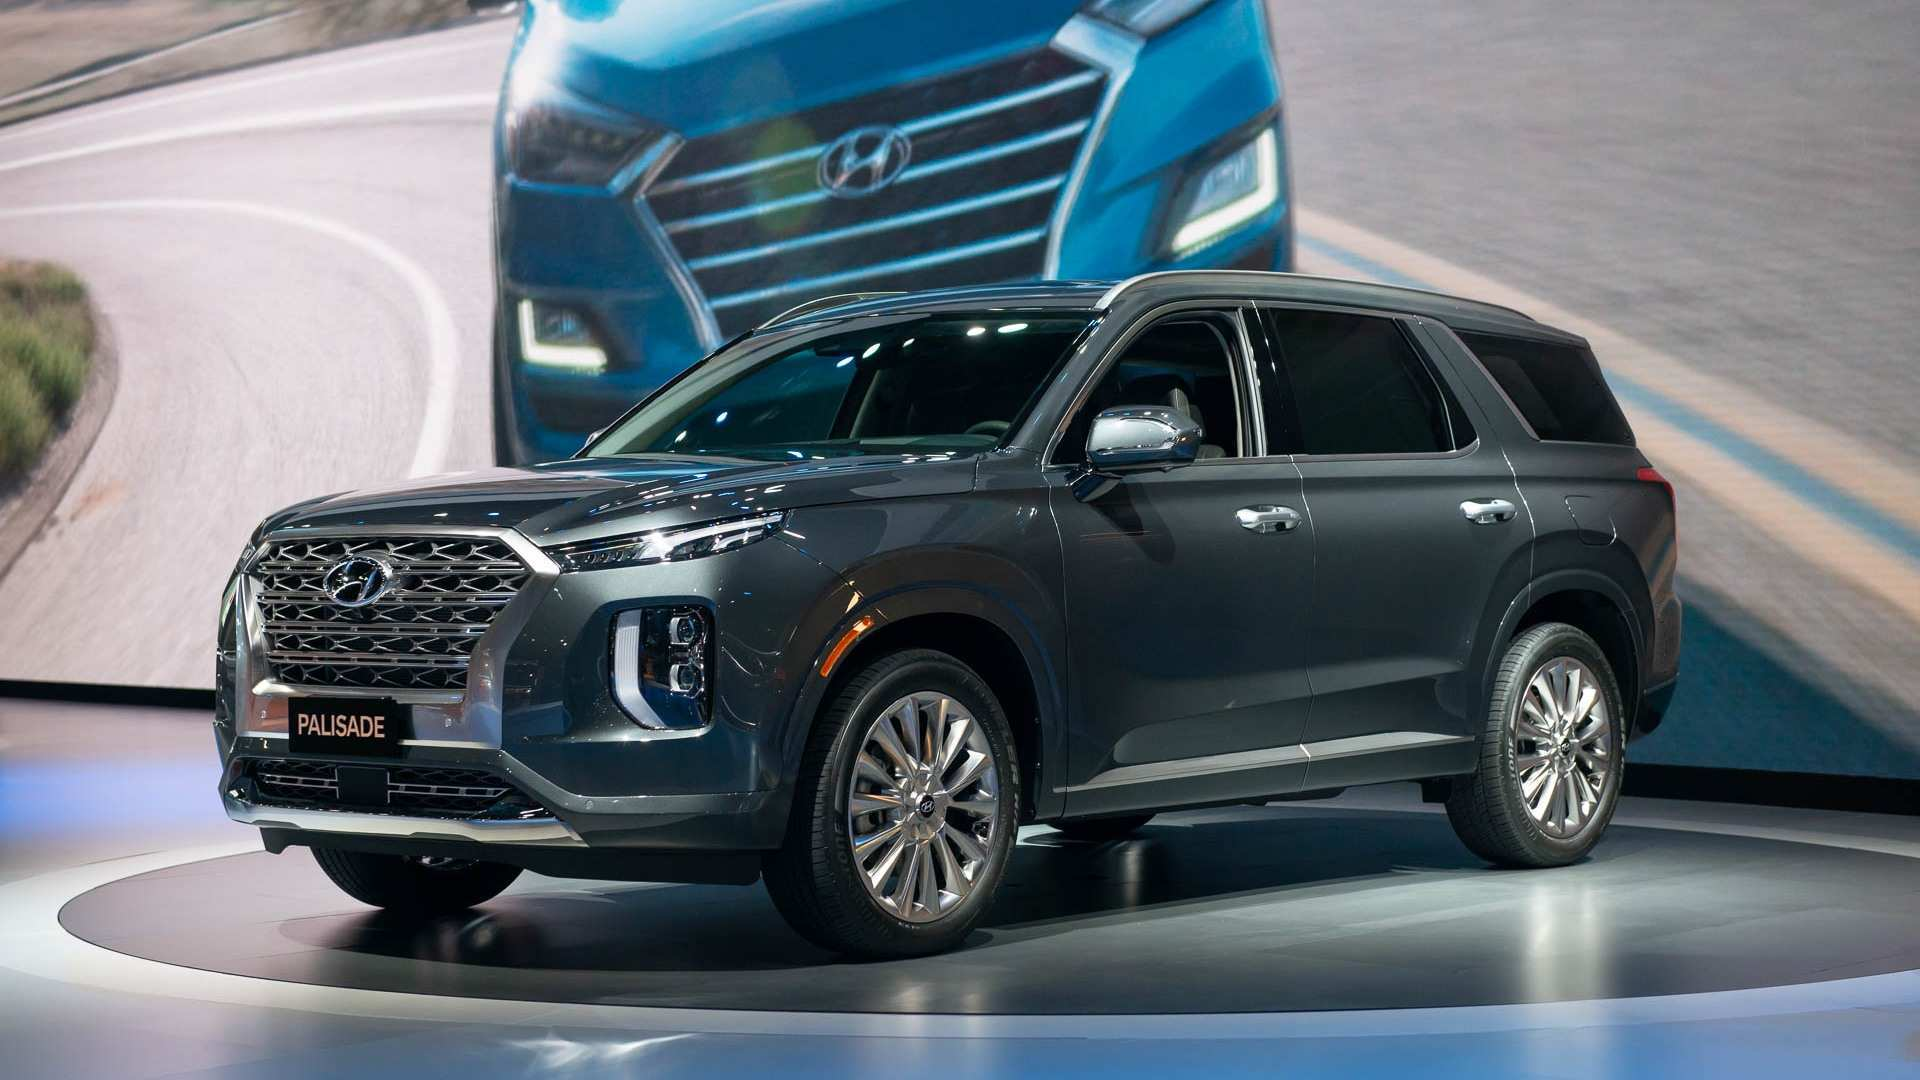 94 Best When Will The 2020 Hyundai Palisade Be Available Redesign And Concept